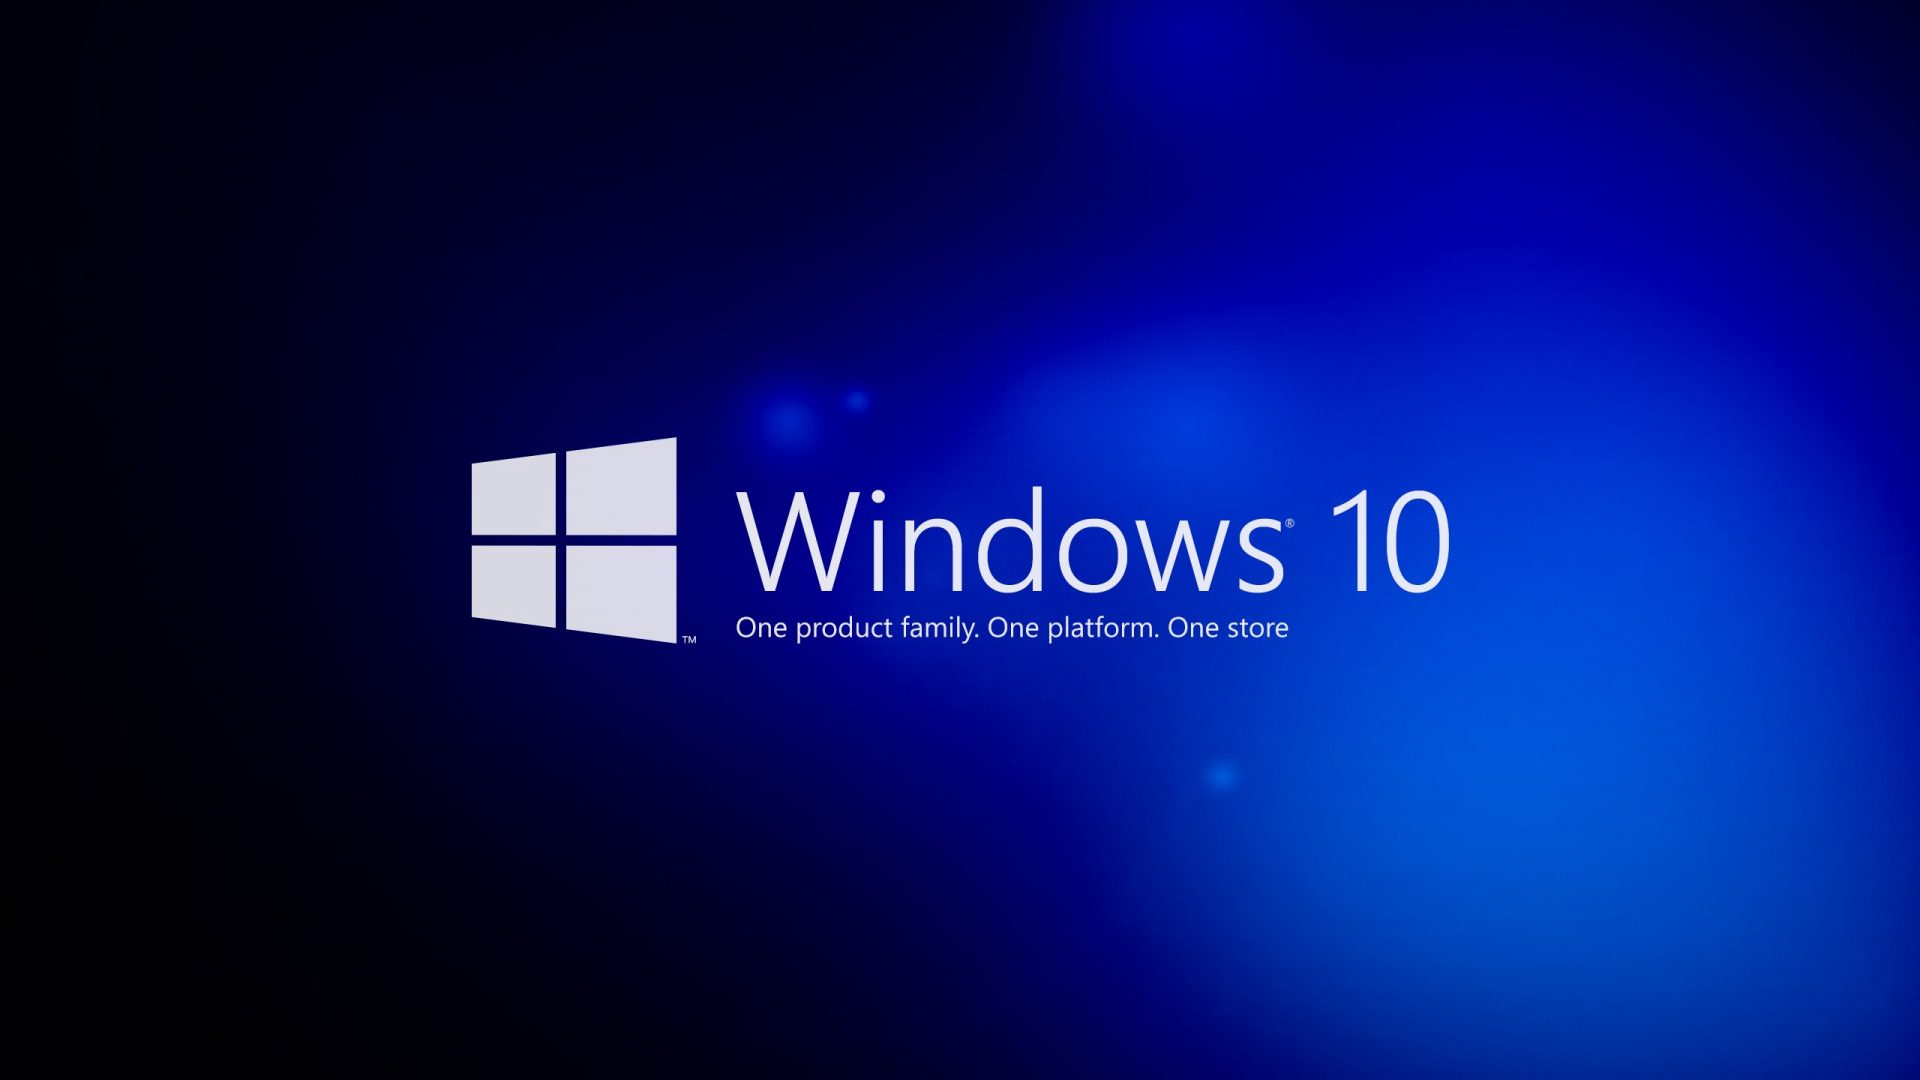 Windows 10 20H1 major improvements revealed; network, notifications, Cortana, download throttle & more